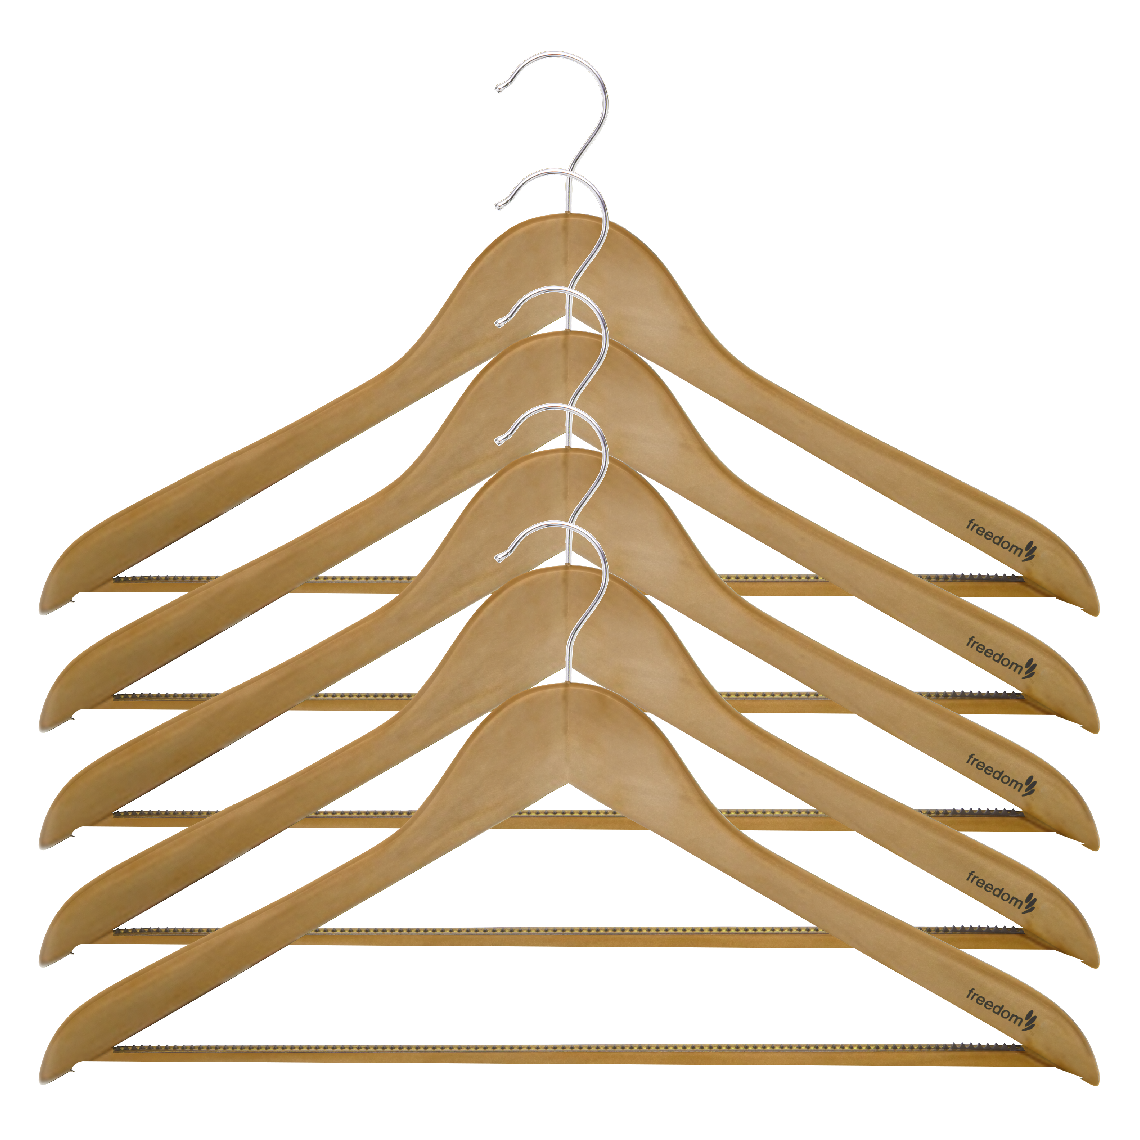 39137 Popular Category - Deep etches_CoatHangers.png